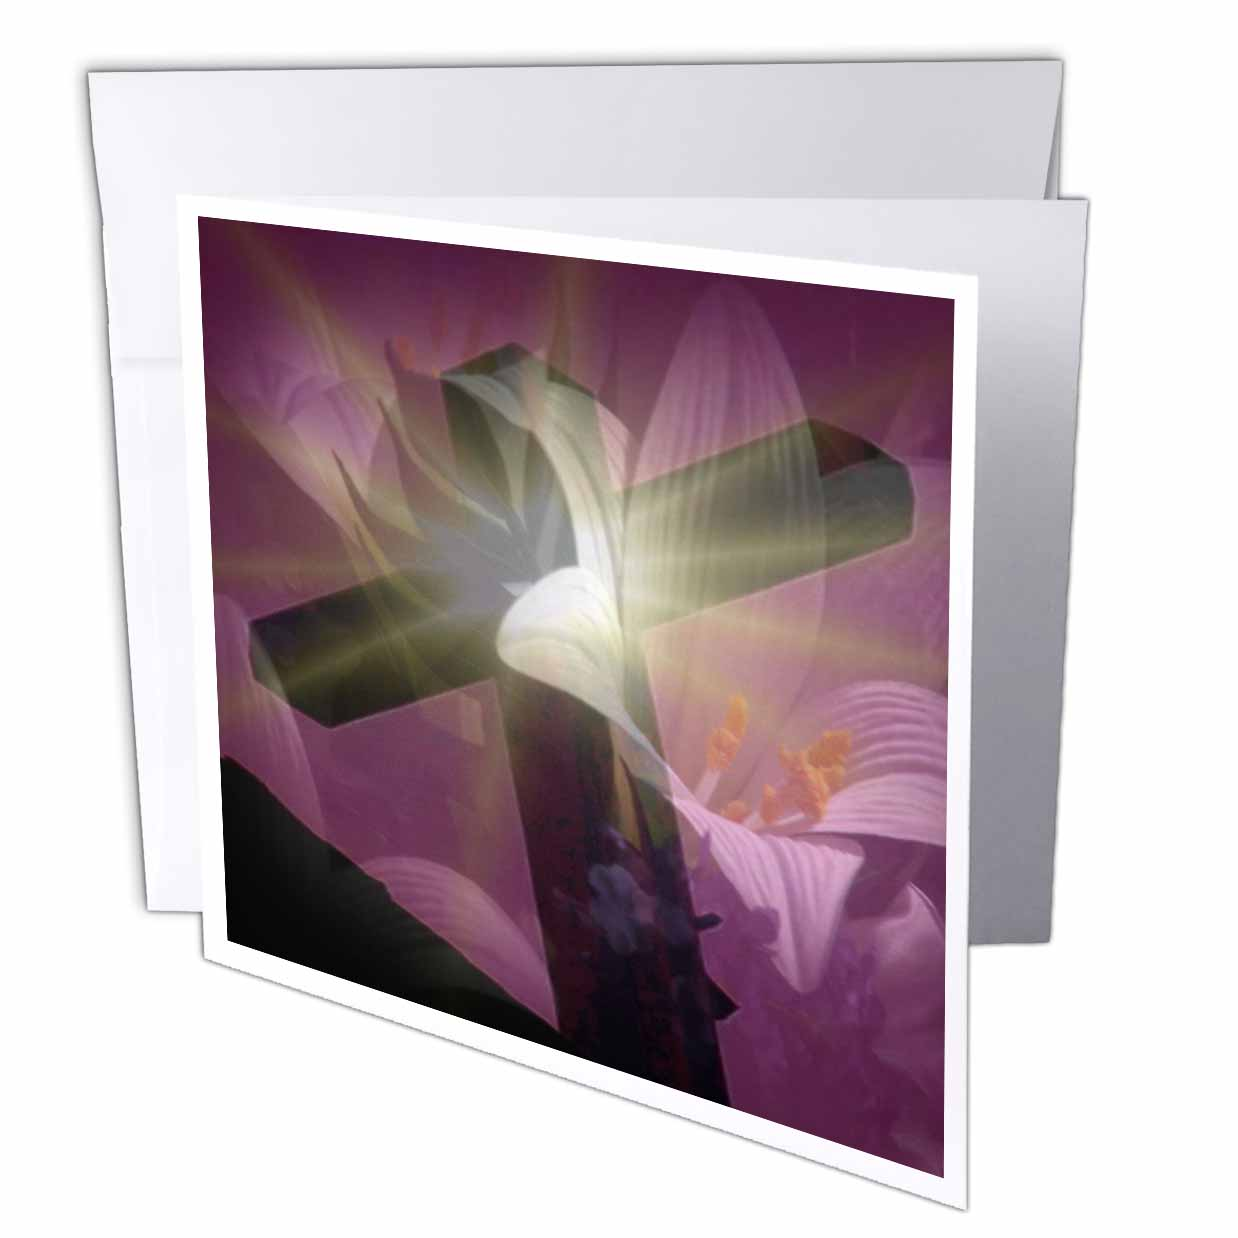 3dRose Christian Cross and Lily , Greeting Cards, 6 x 6 inches, set of 12